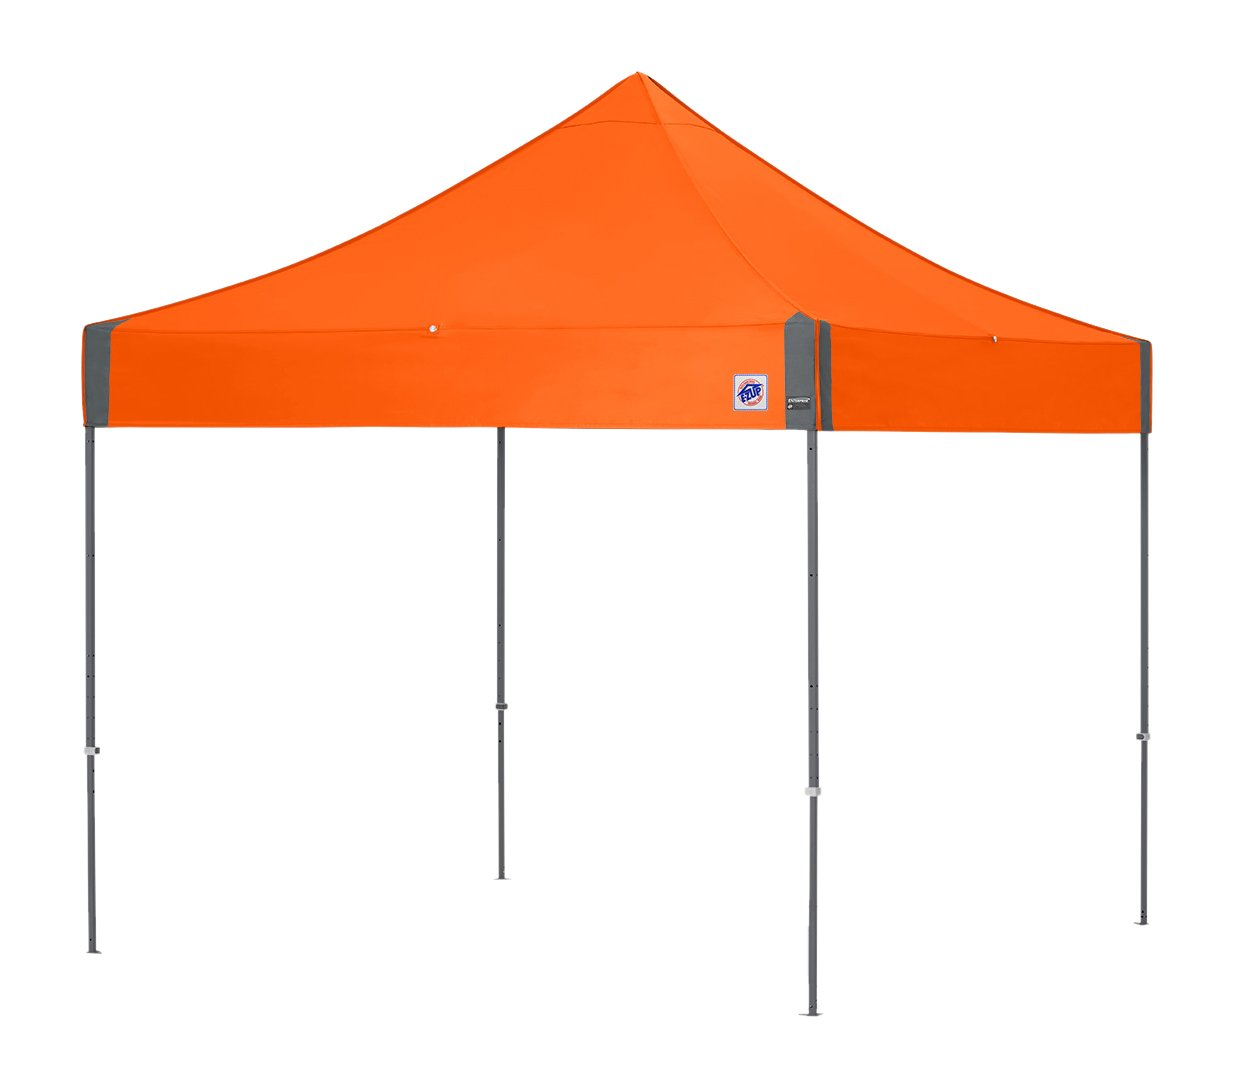 E-Z UP EP3STL10KFSGTSO Orange Top, 10 x 10 Enterprise Instant Shelter Canopy with Grey Frame and Steel